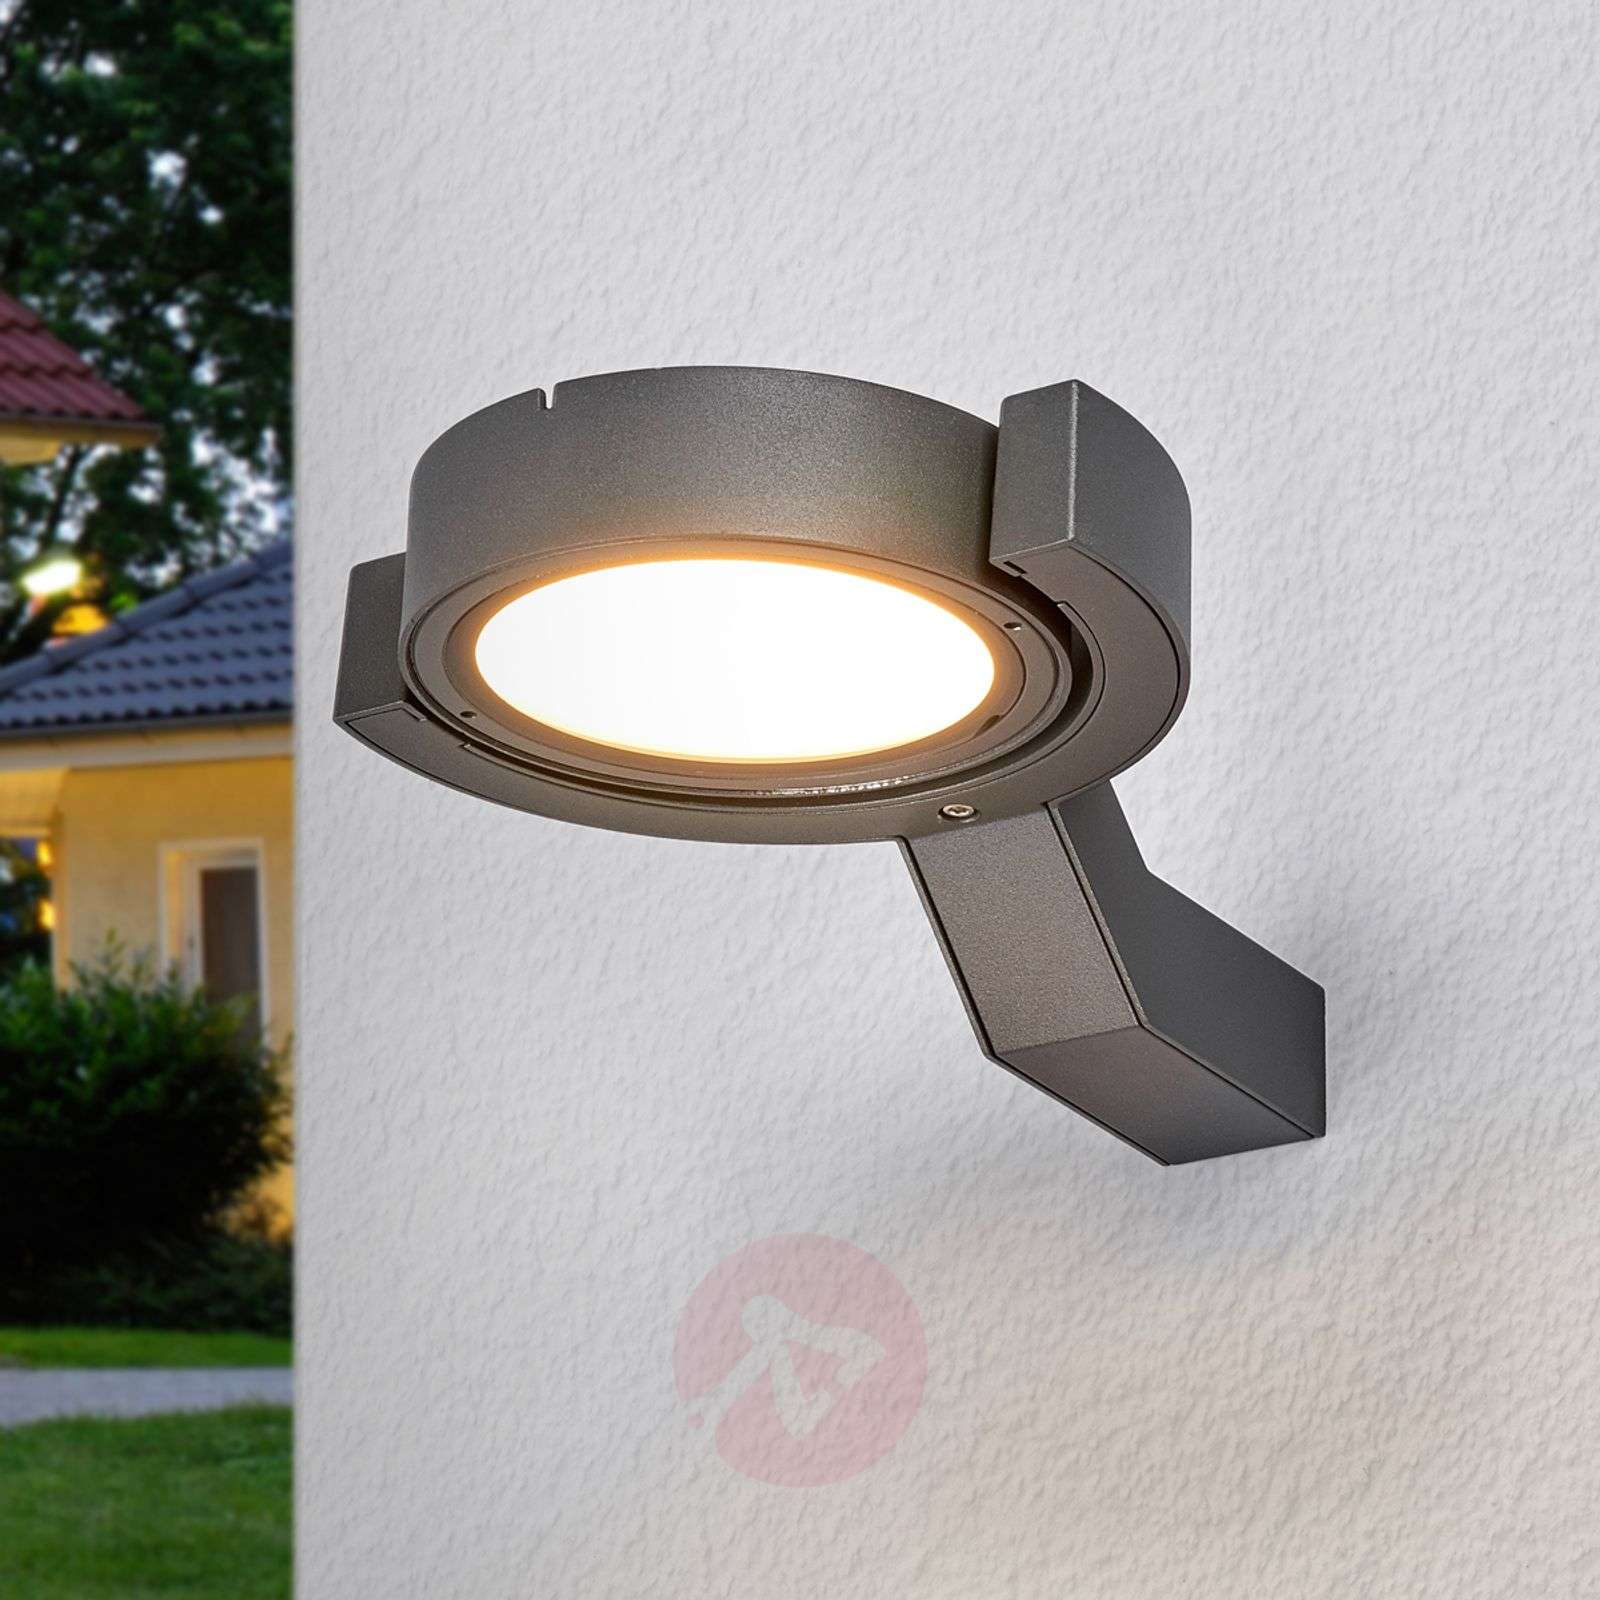 isita adjustable led outdoor wall light On applique eclairage exterieur led